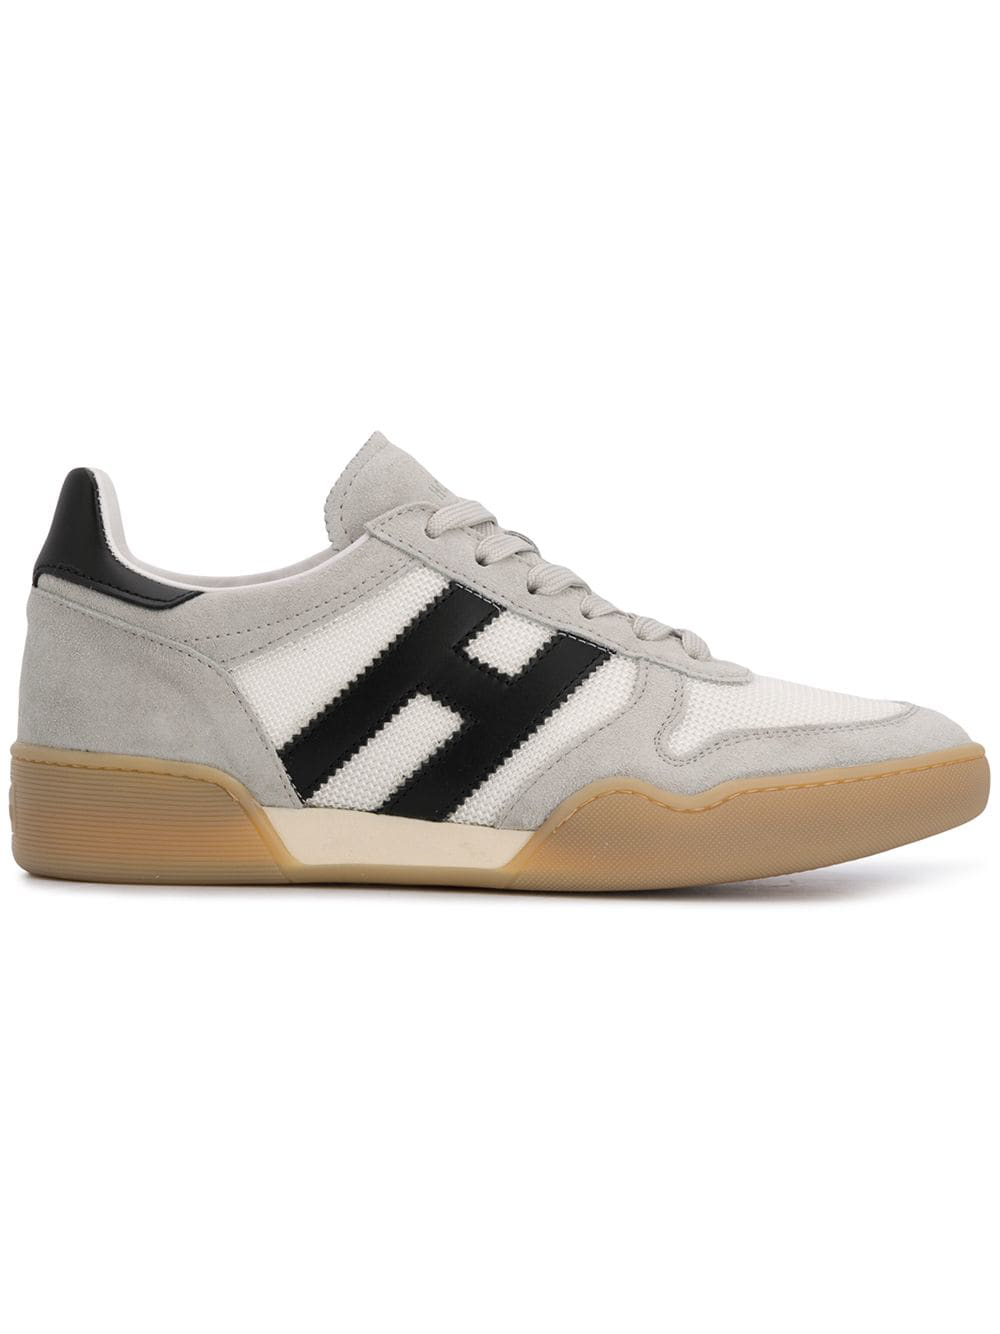 Hogan H357 Lace-up Sneakers In Multi | ModeSens